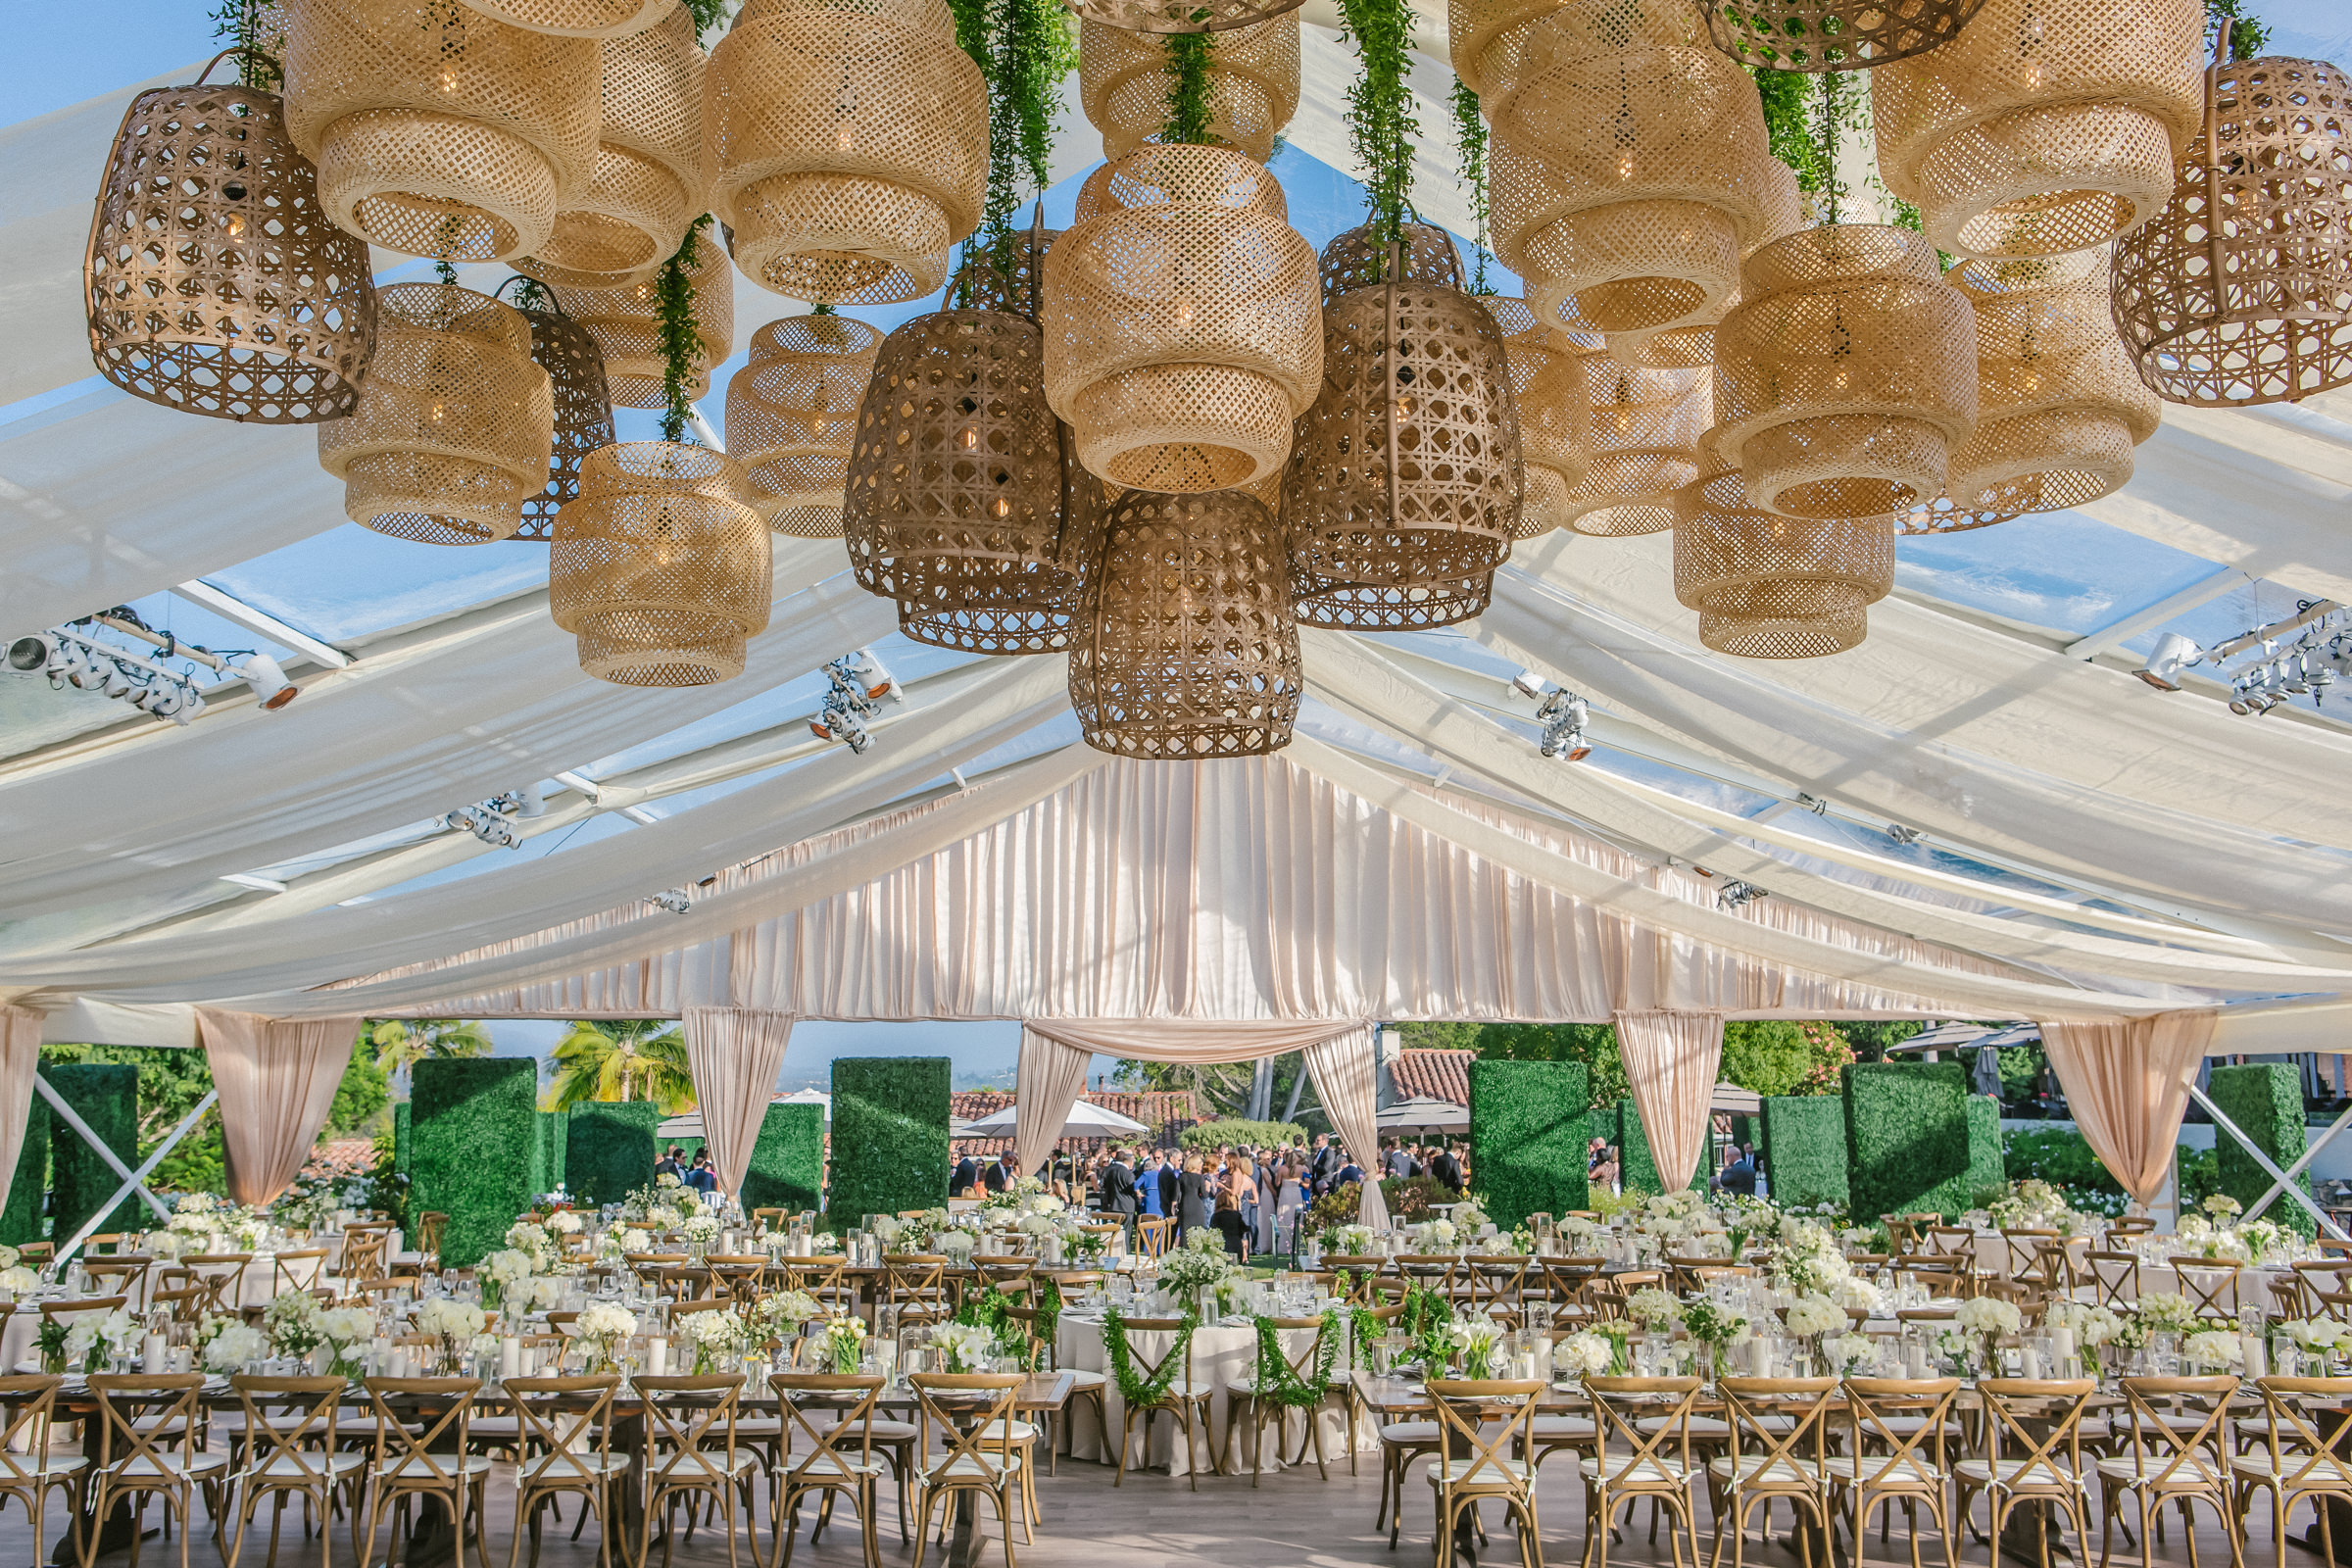 Reception decor with woven natural material hanging lights - photo by Amy and Stuart Photography